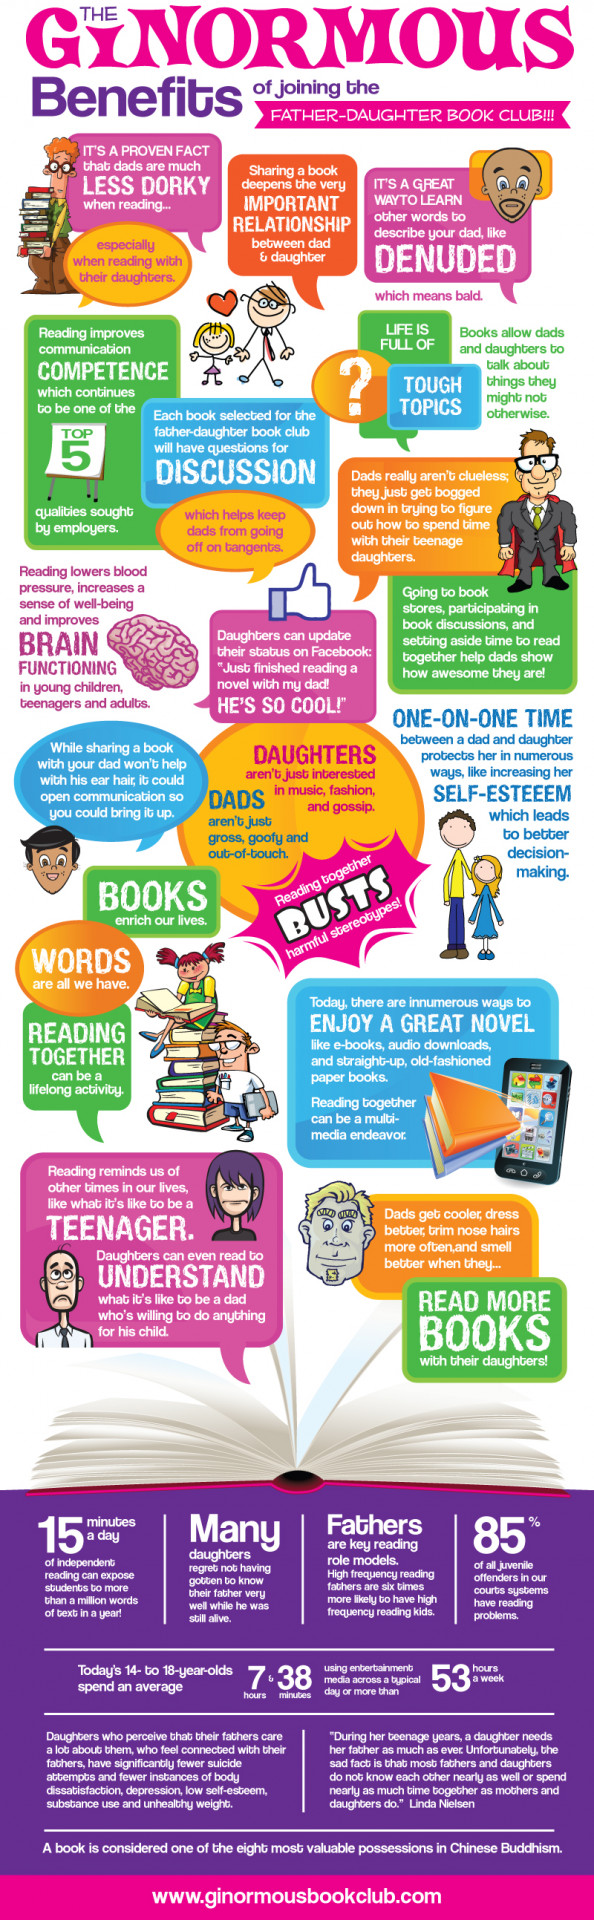 The Ginormous Benefits of the Ginormous Father-Daugher Book Club Infographic